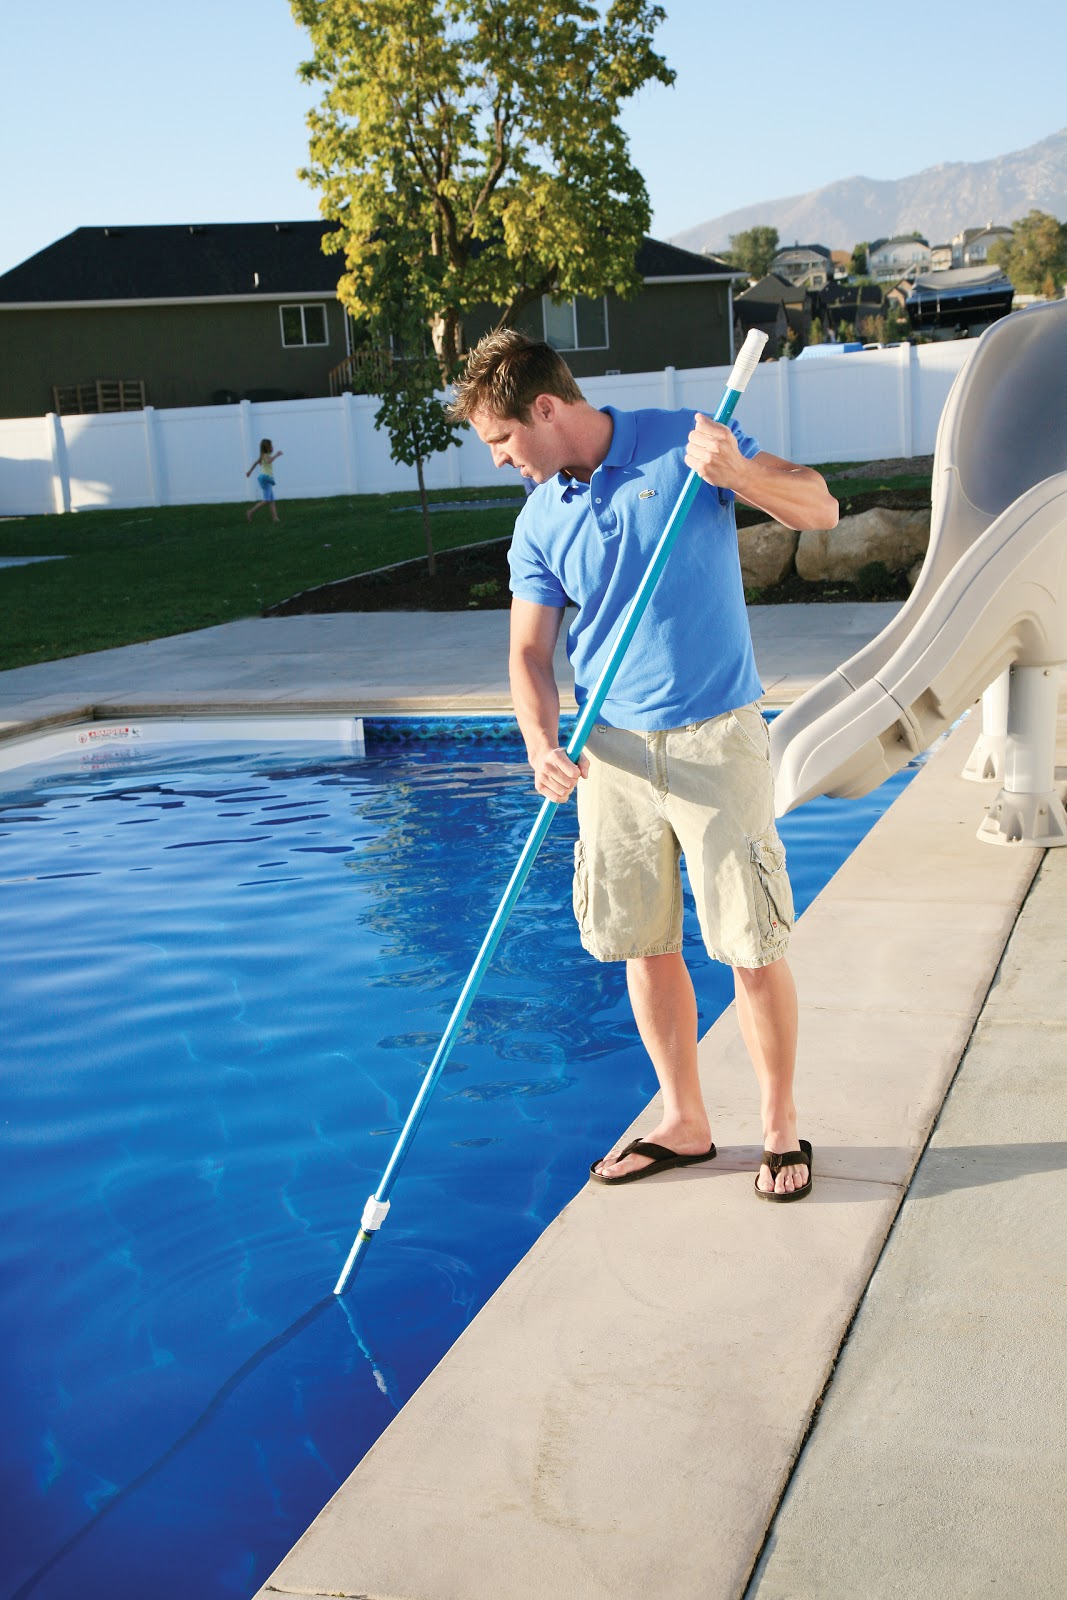 Coverstar Safety Swimming Pool Covers For Automatic And Solid Mesh Pool Chemistry